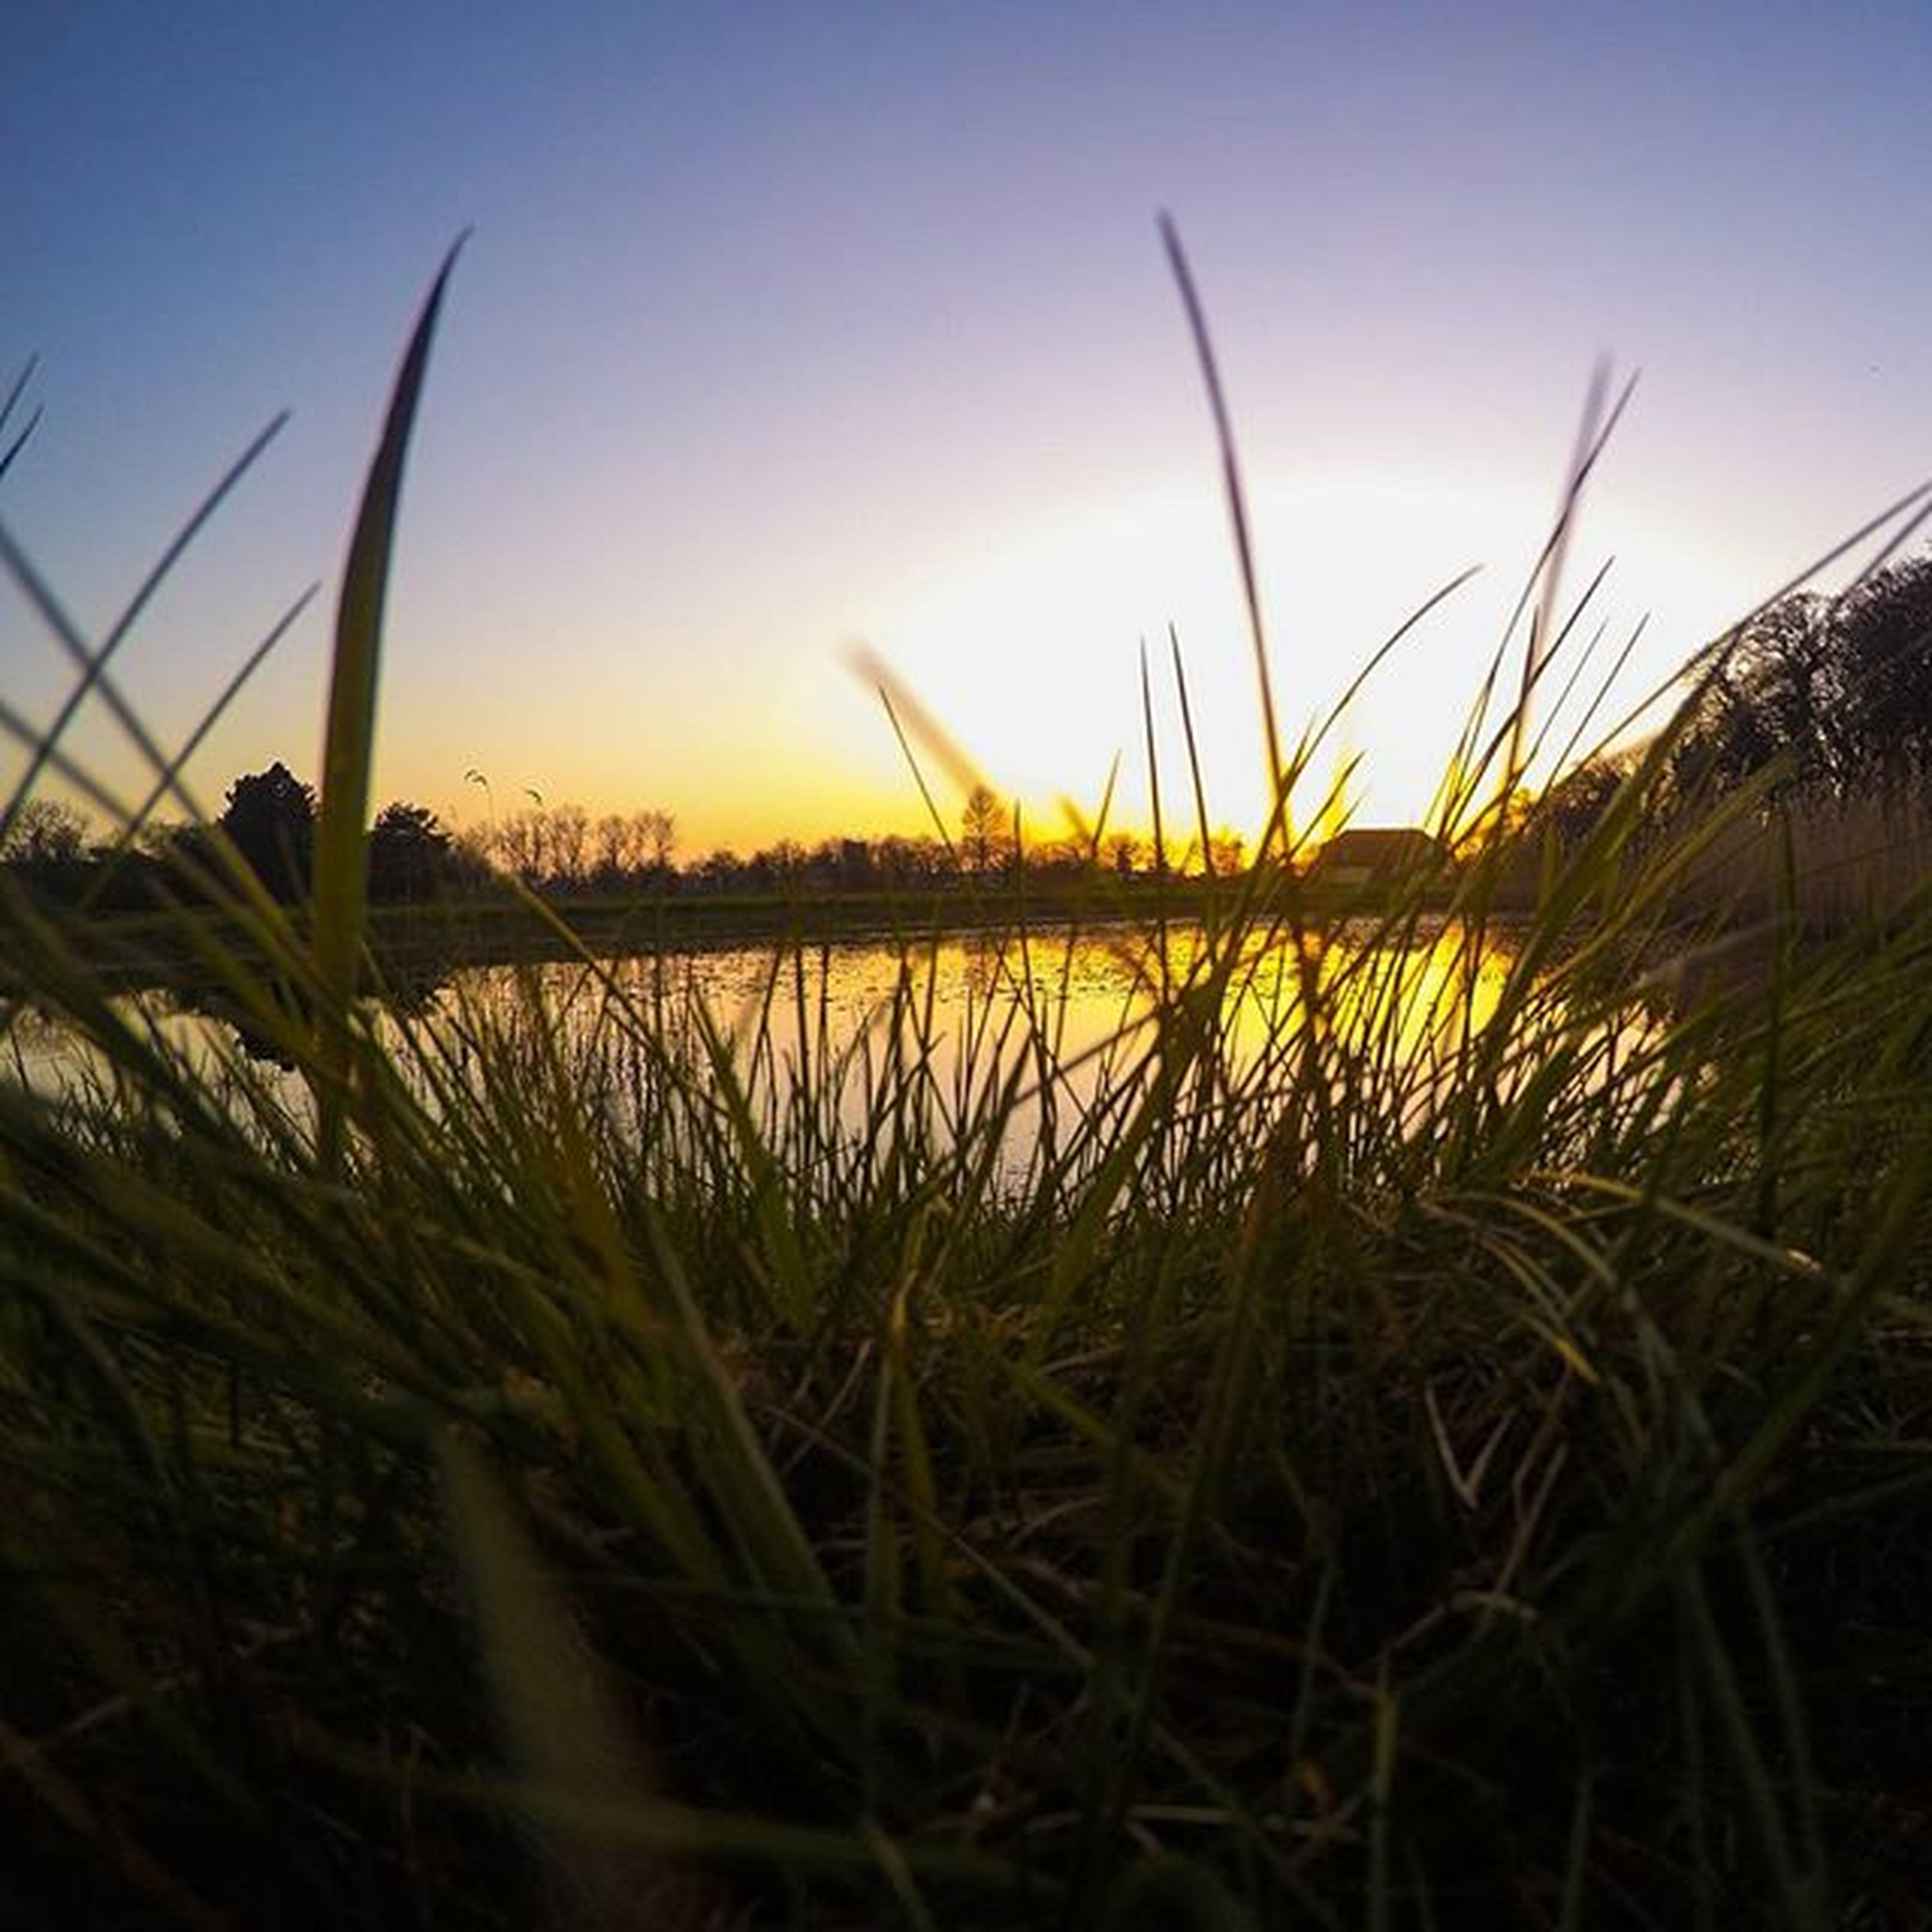 grass, tranquility, water, tranquil scene, plant, growth, beauty in nature, nature, scenics, sunset, clear sky, sky, lake, field, idyllic, growing, outdoors, sunlight, no people, reflection